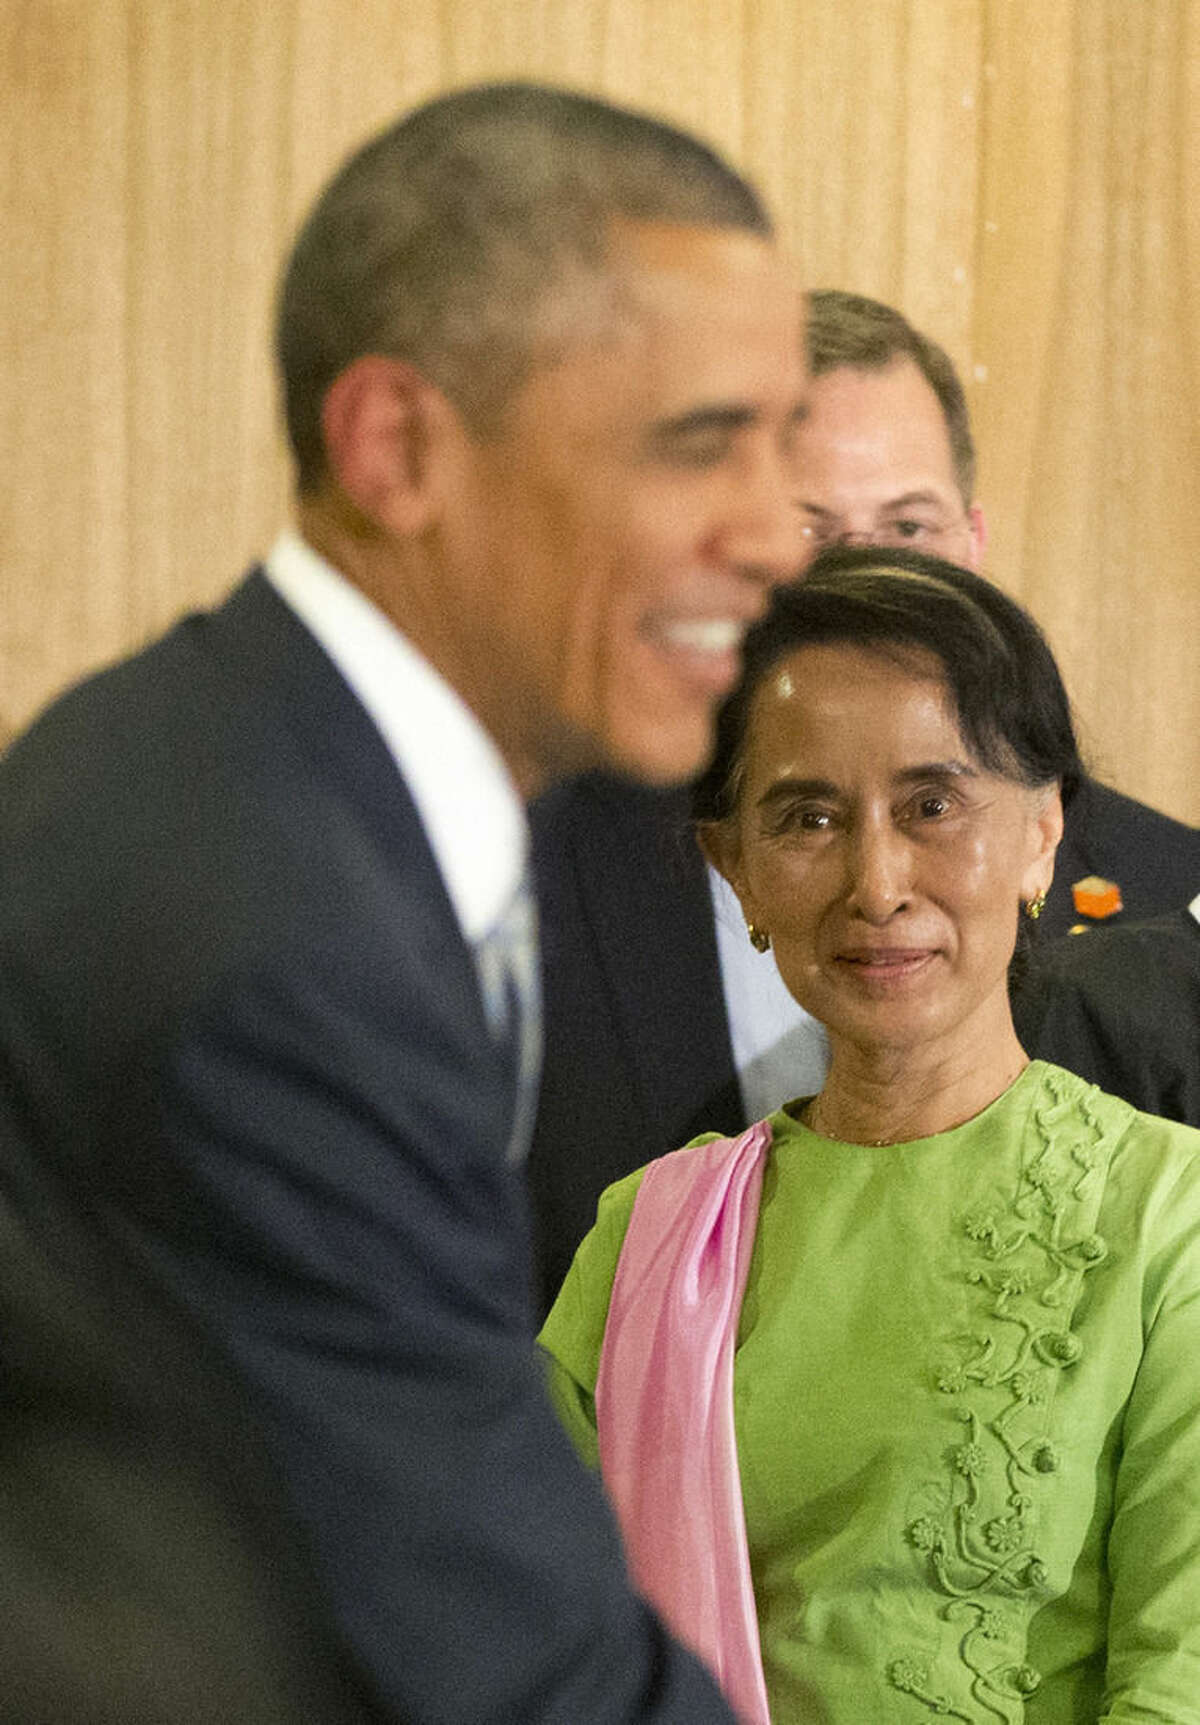 Myanmar's opposition leader Aung San Suu Kyi, right, looks at U.S. President Barack Obama greet participants following a meeting at Parliamentary Resource Center, Thursday, Nov. 13, 2014 in Naypyitaw, Myanmar. (AP Photo/Pablo Martinez Monsivais)